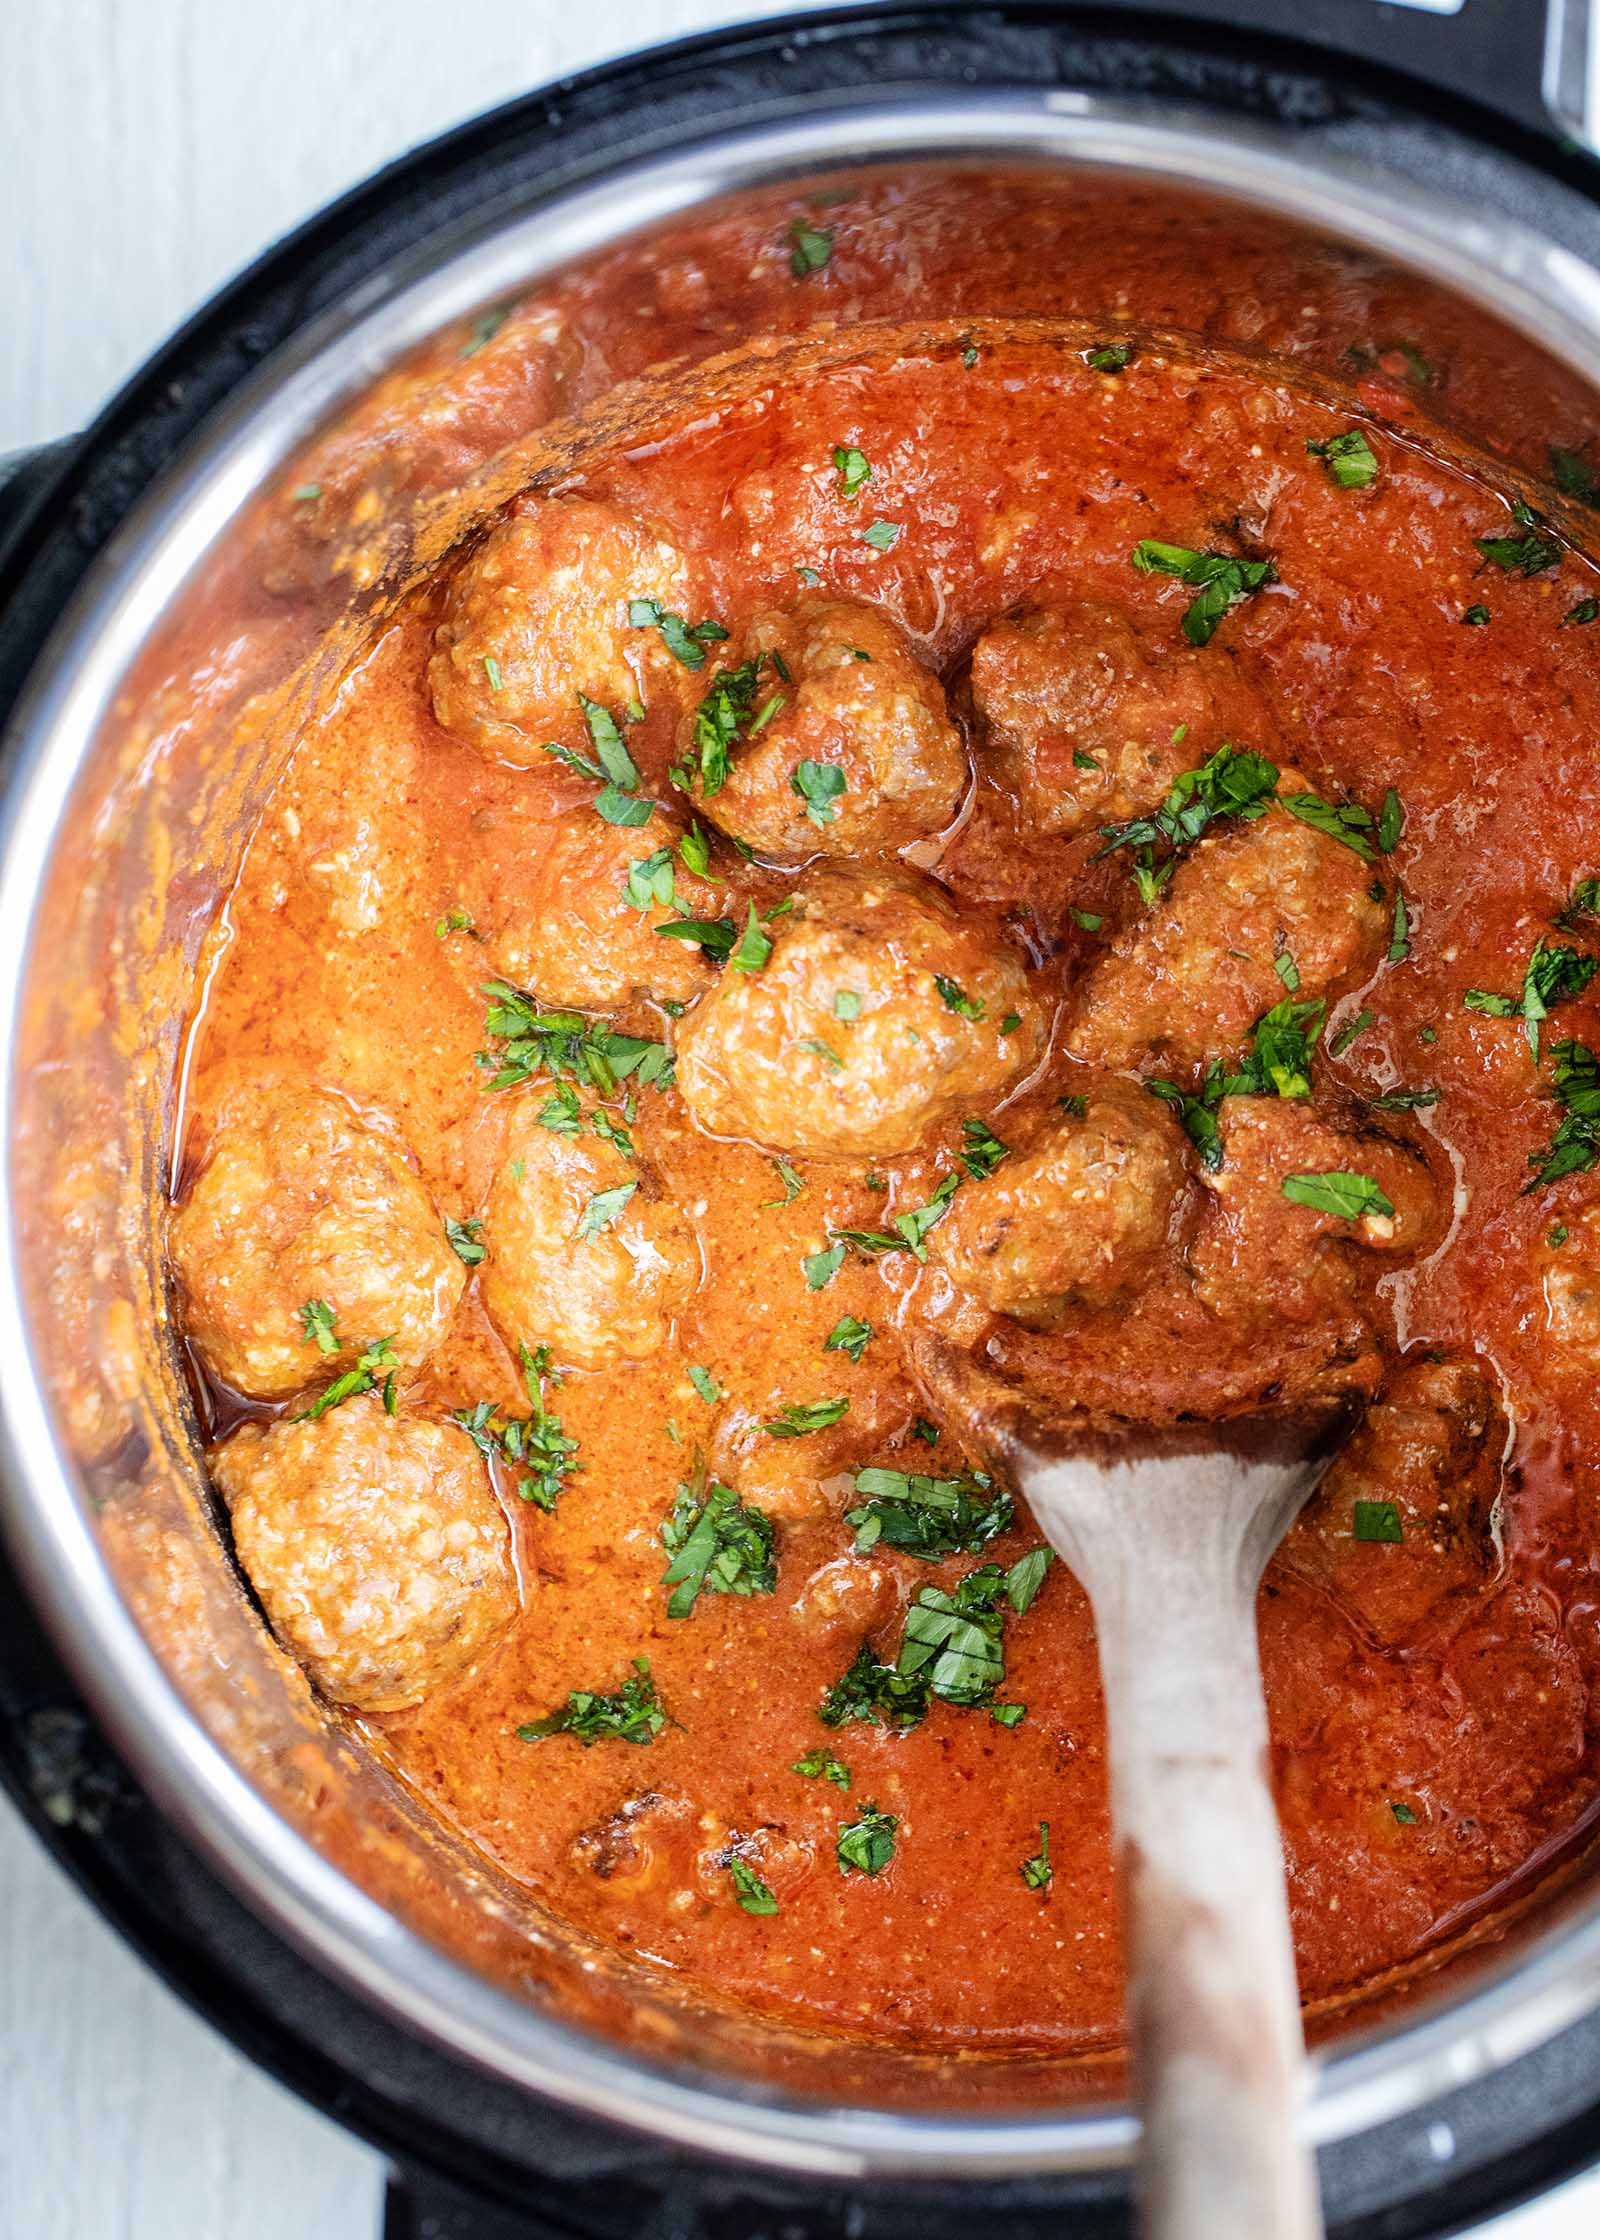 Slow cooker sausage balls for a party